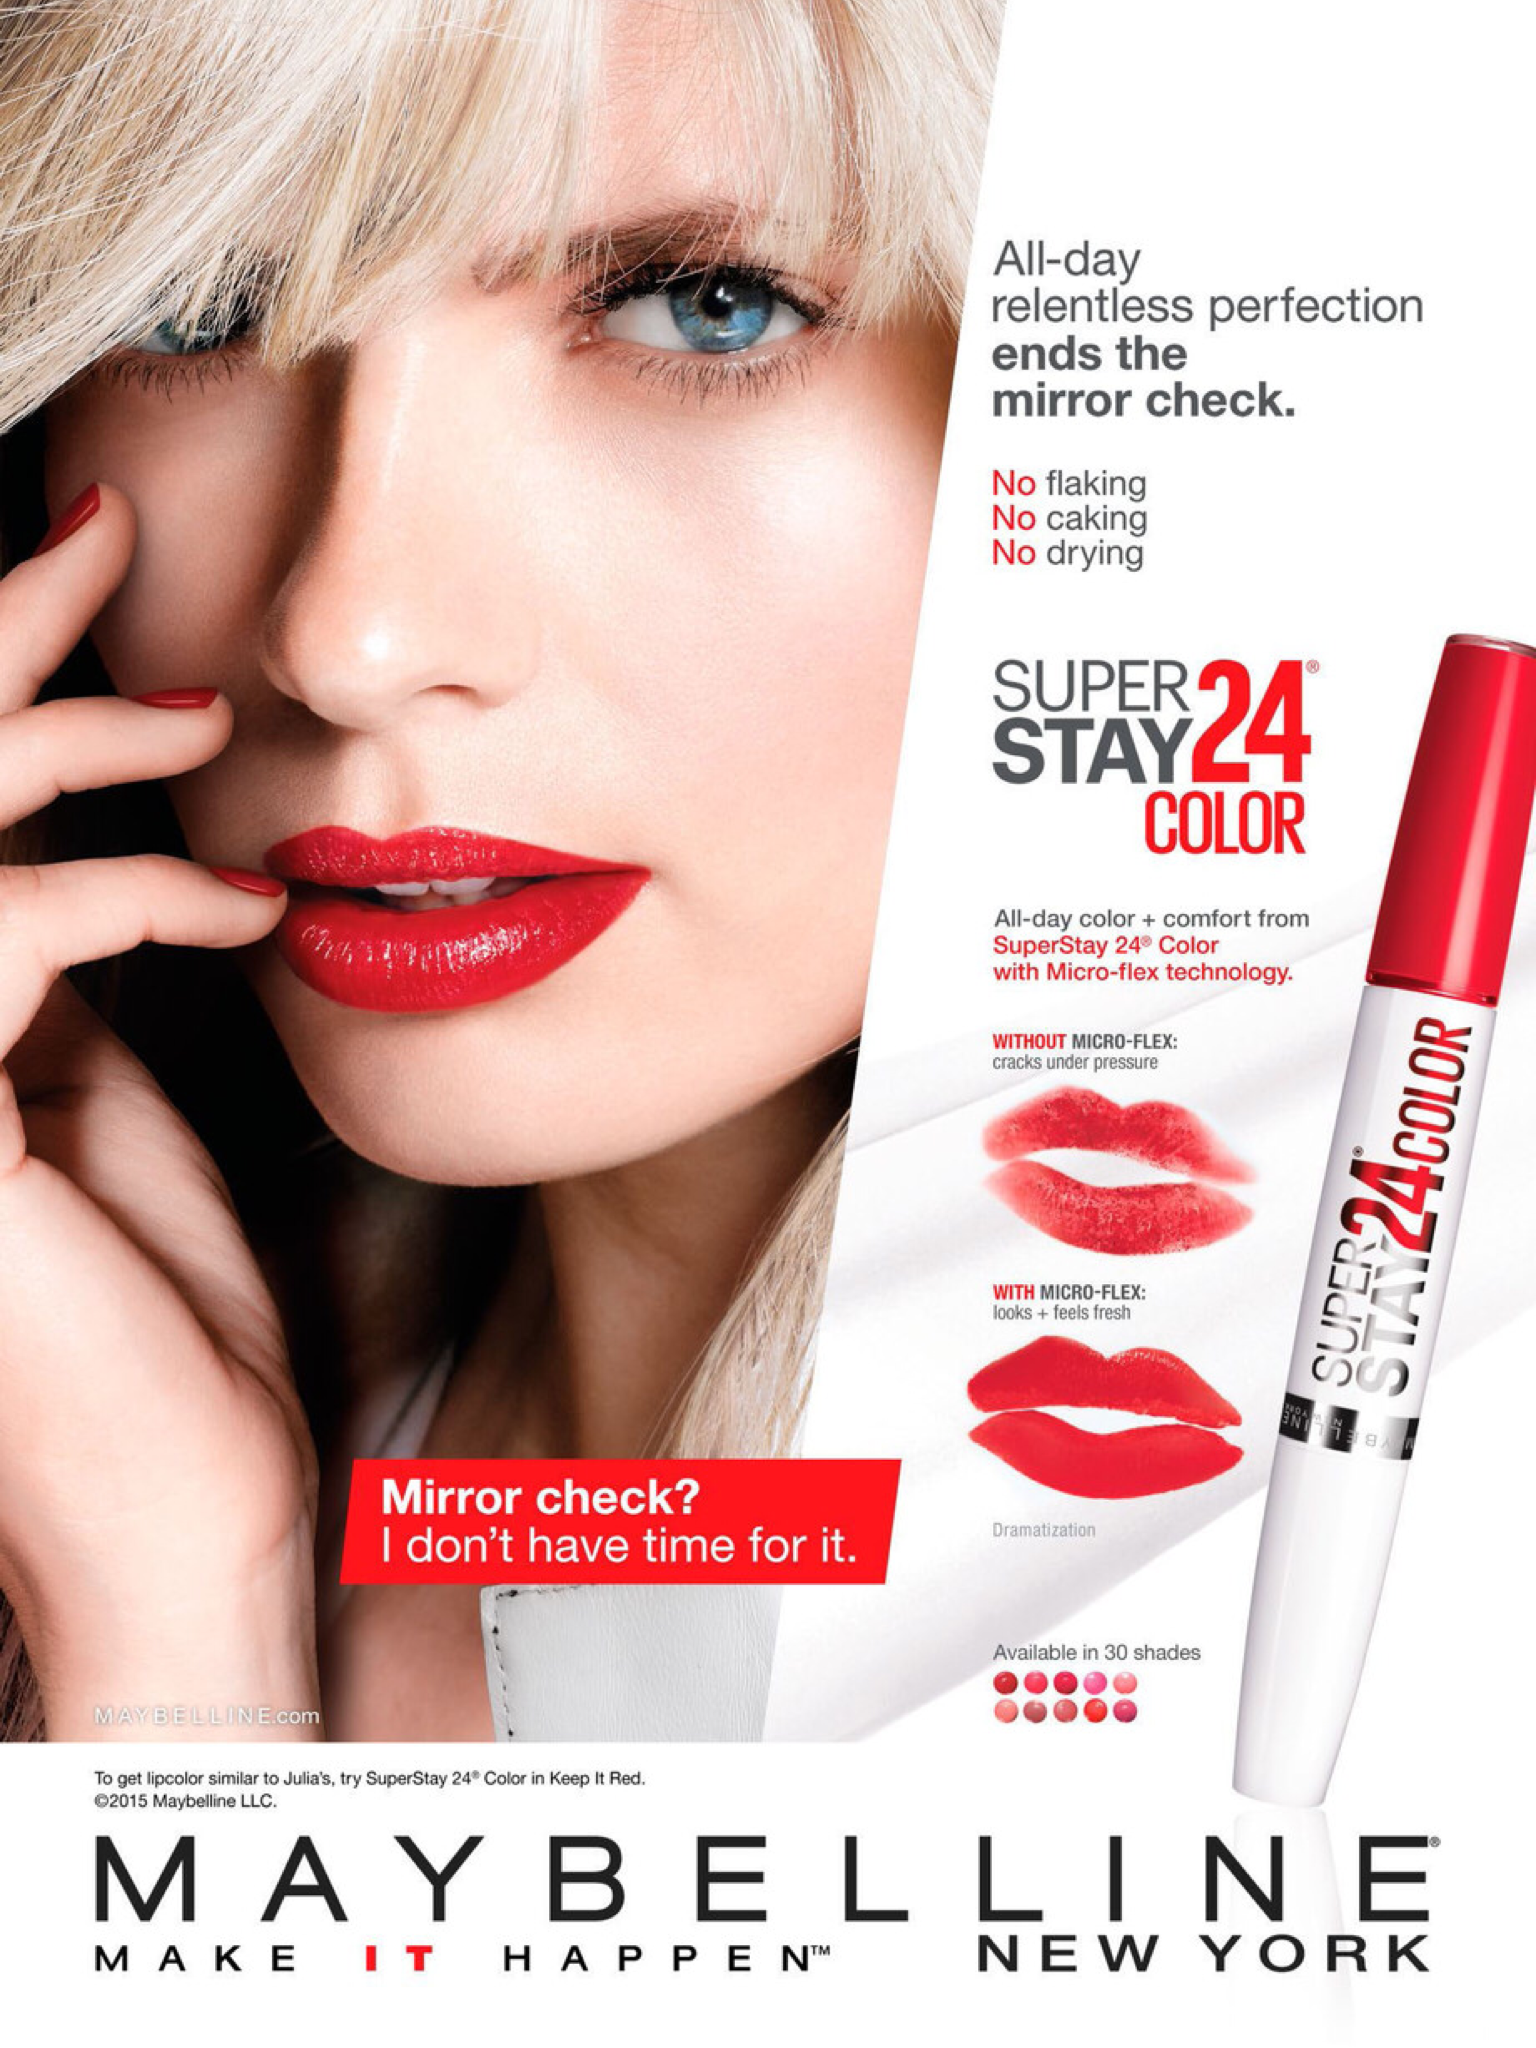 Maybelline Lipstick Ad The Art Of Beauty